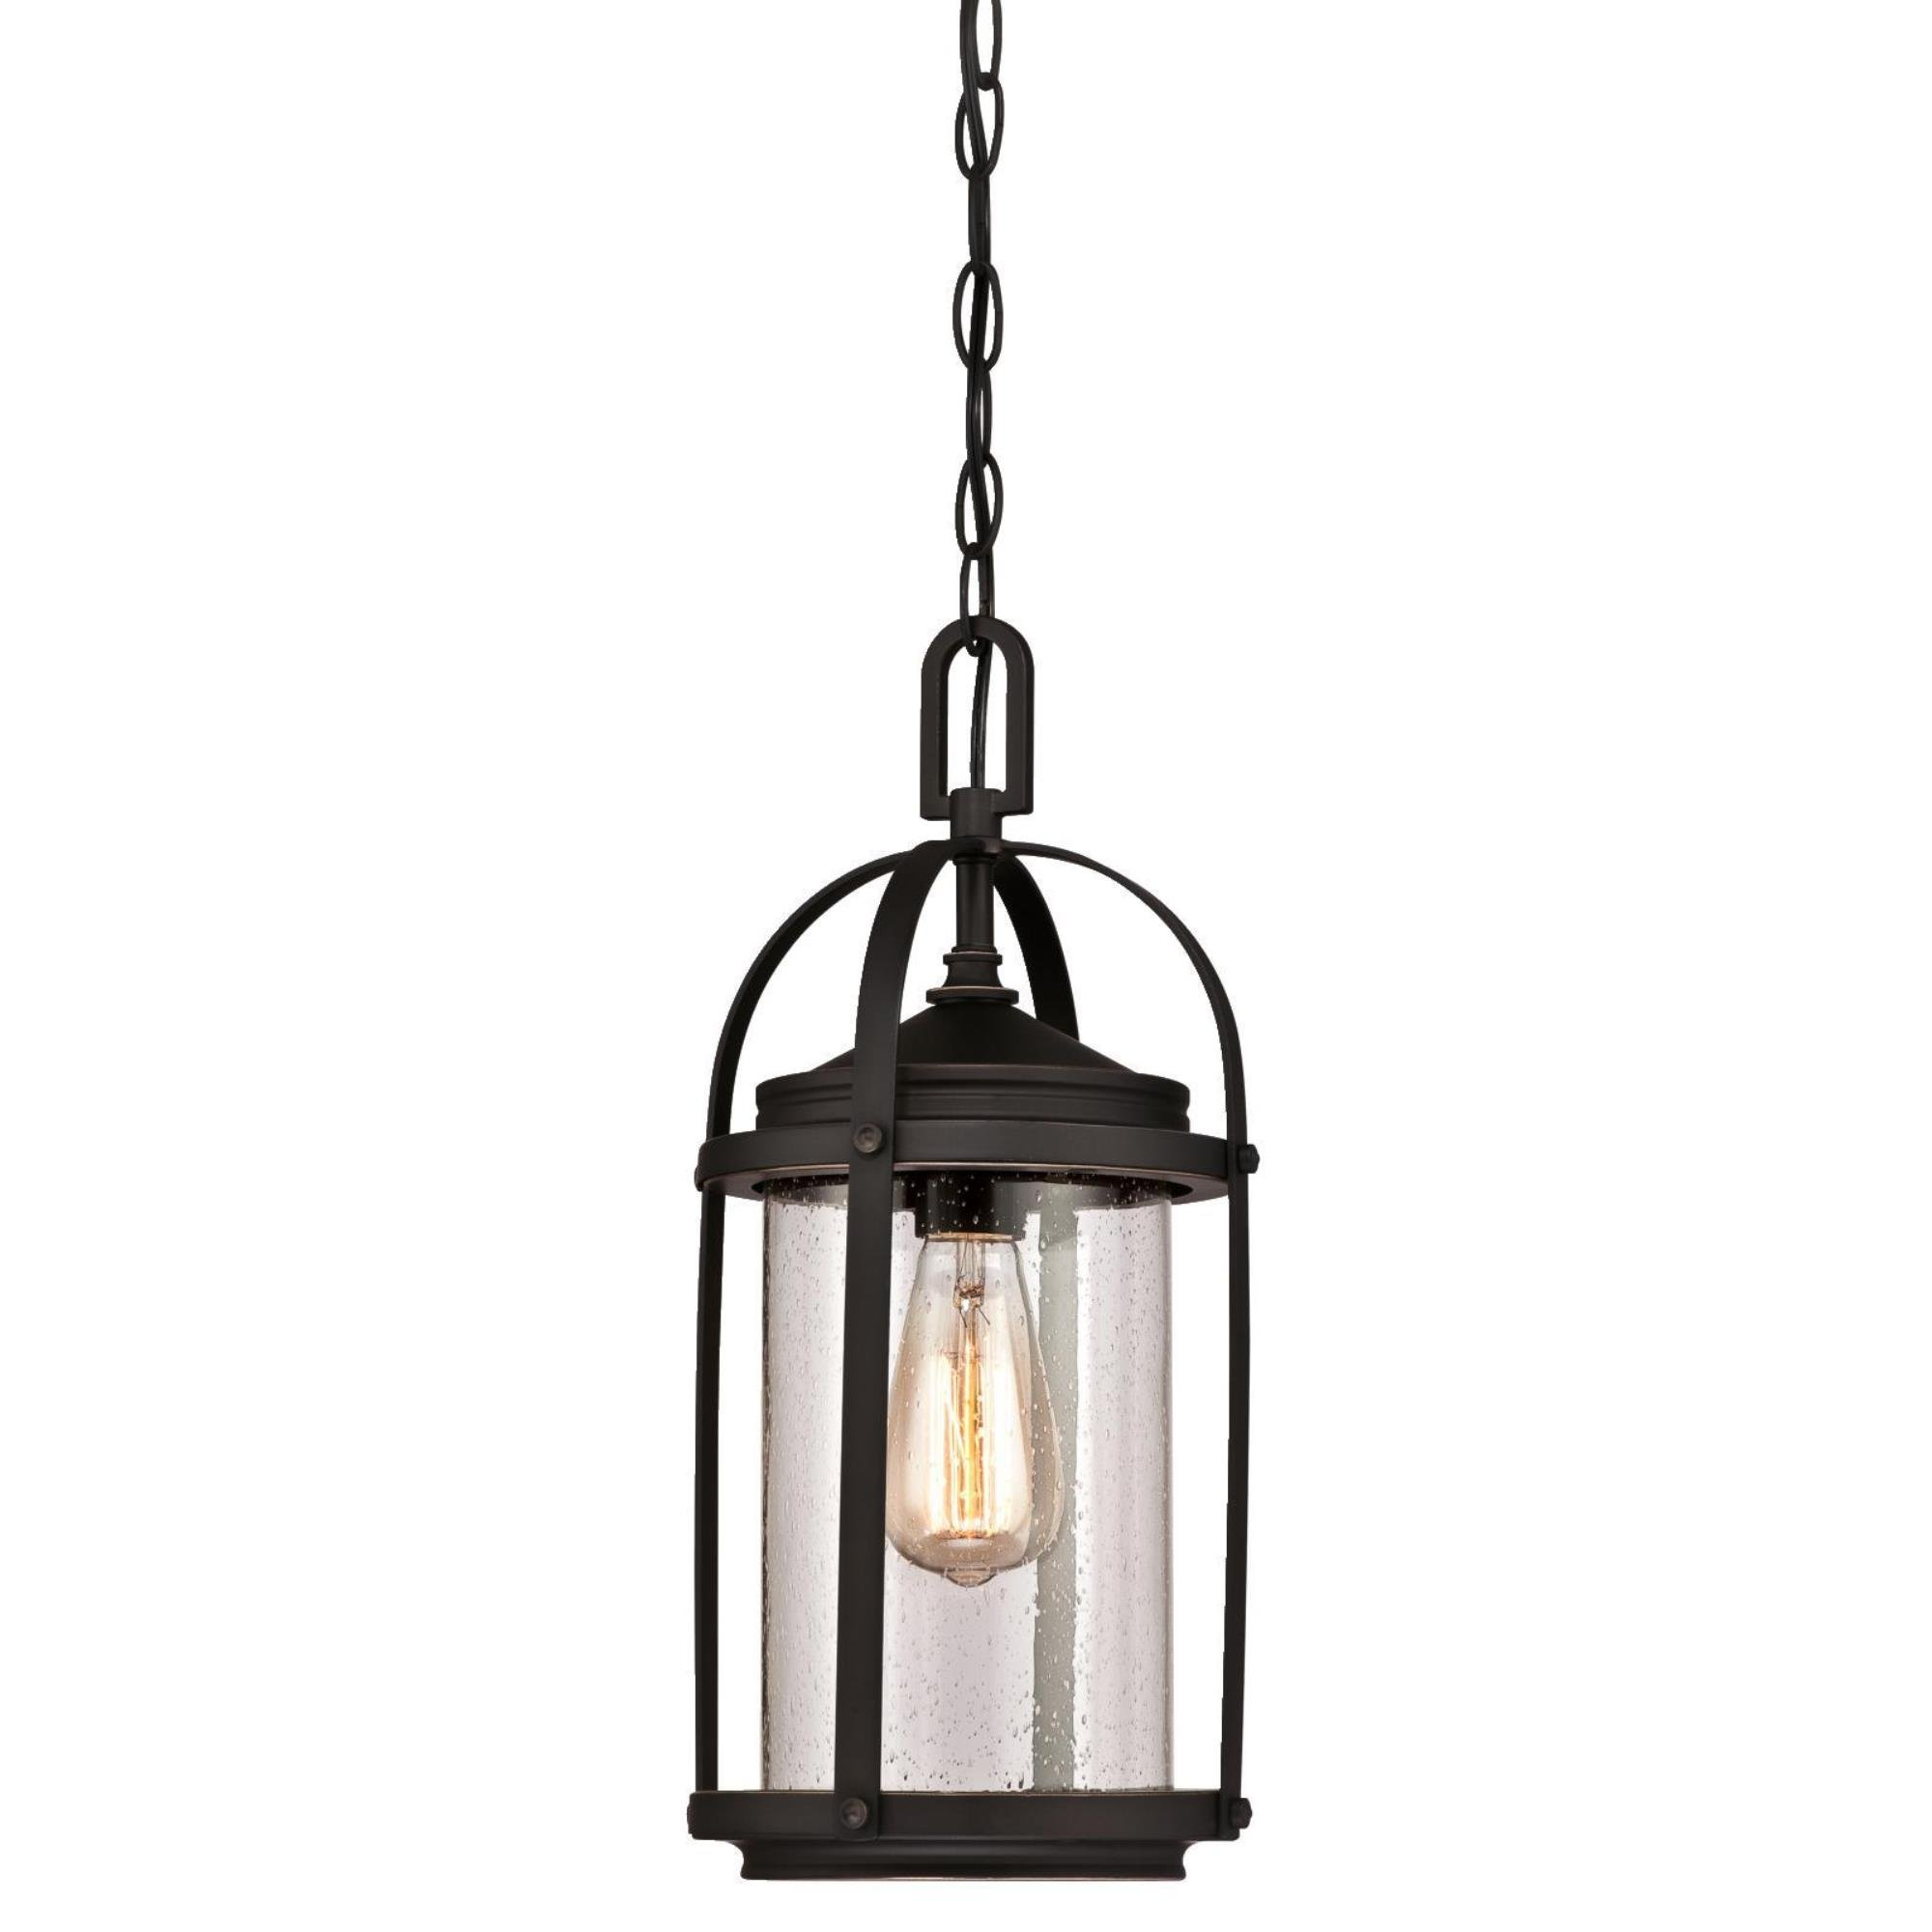 Westinghouse Lighting 6339400 Grandview One-Light Outdoor Pendant, Oil Rubbed Bronze Finish with Highlights and Clear Seeded Glass by Westinghouse Lighting